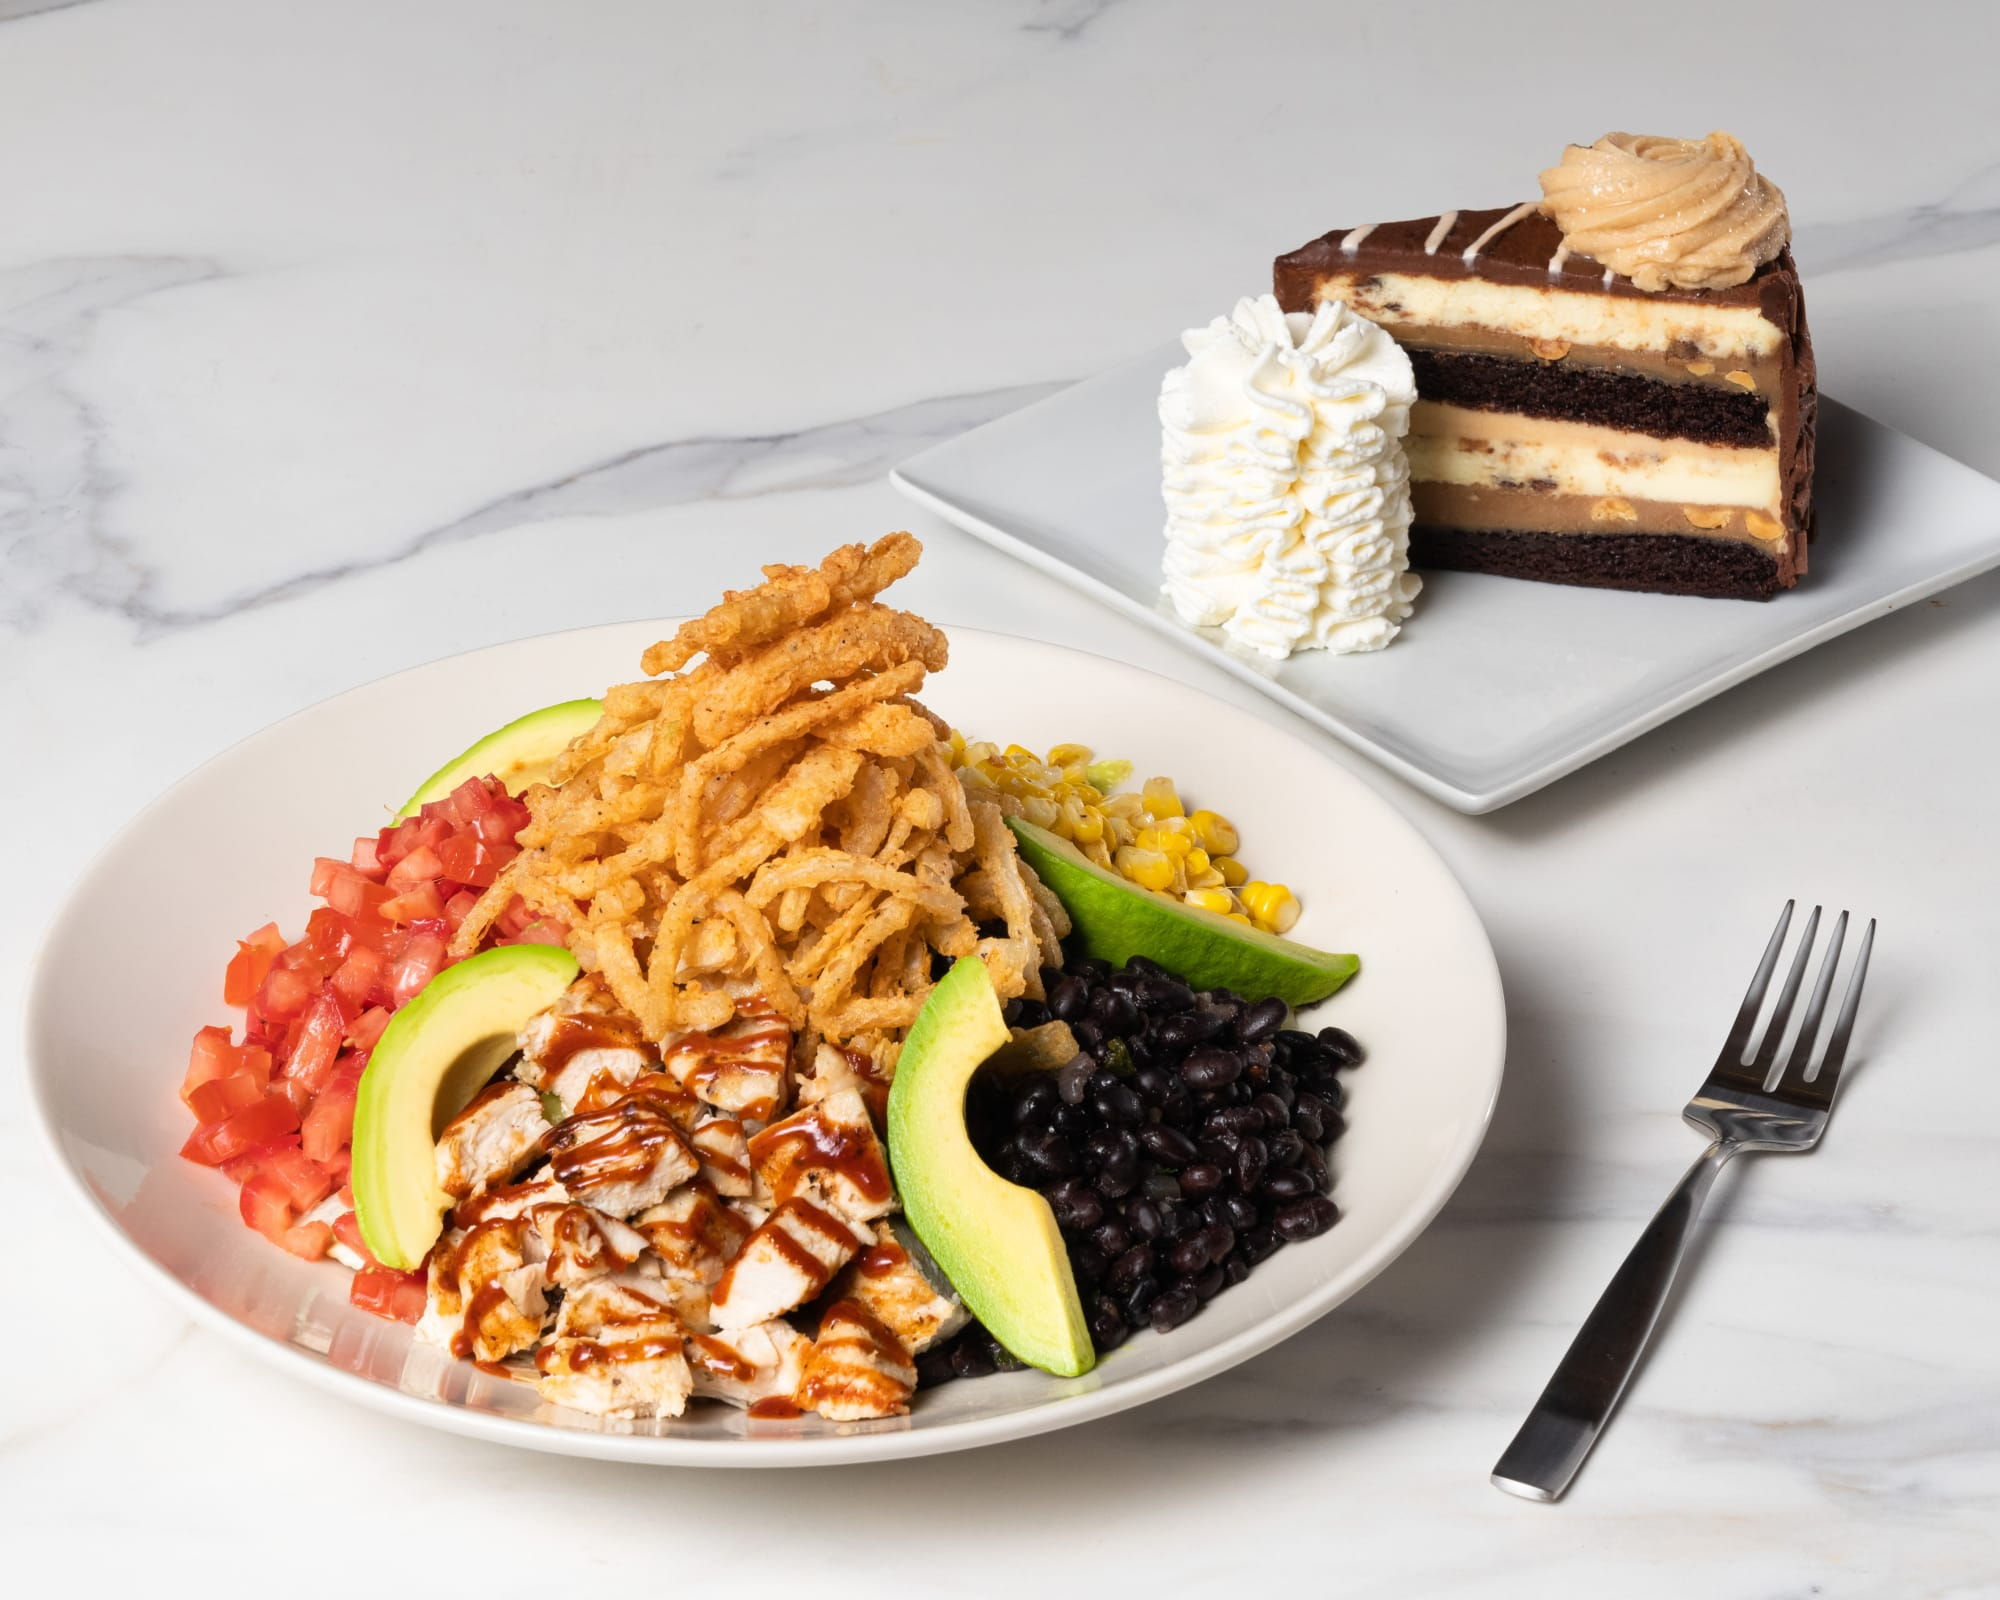 The Cheesecake Factory has 900 lunch combinations with this lunch deal